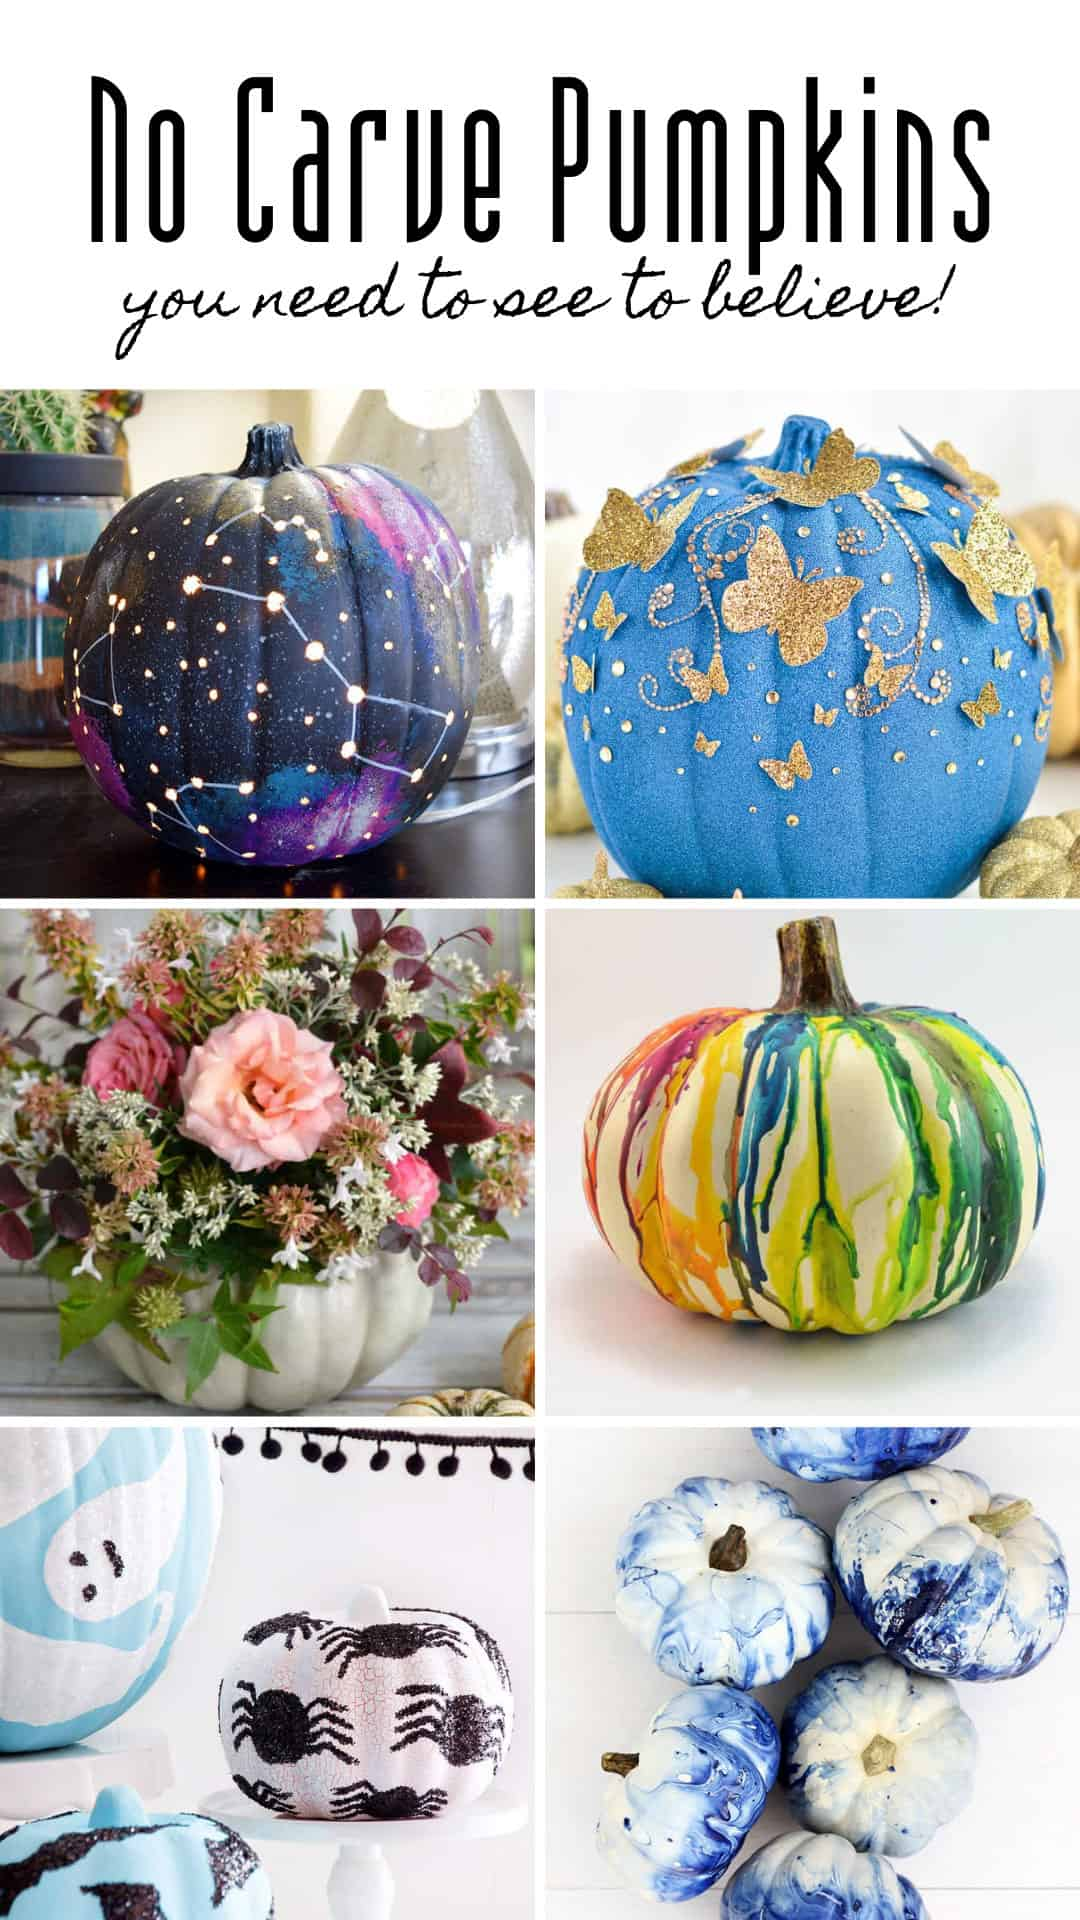 If you're looking for ideas for pumpkin decorating without carving this is the ultimate collection of no mess designs for Fall and Halloween that will be loved by kids and grownups alike! #pumpkin